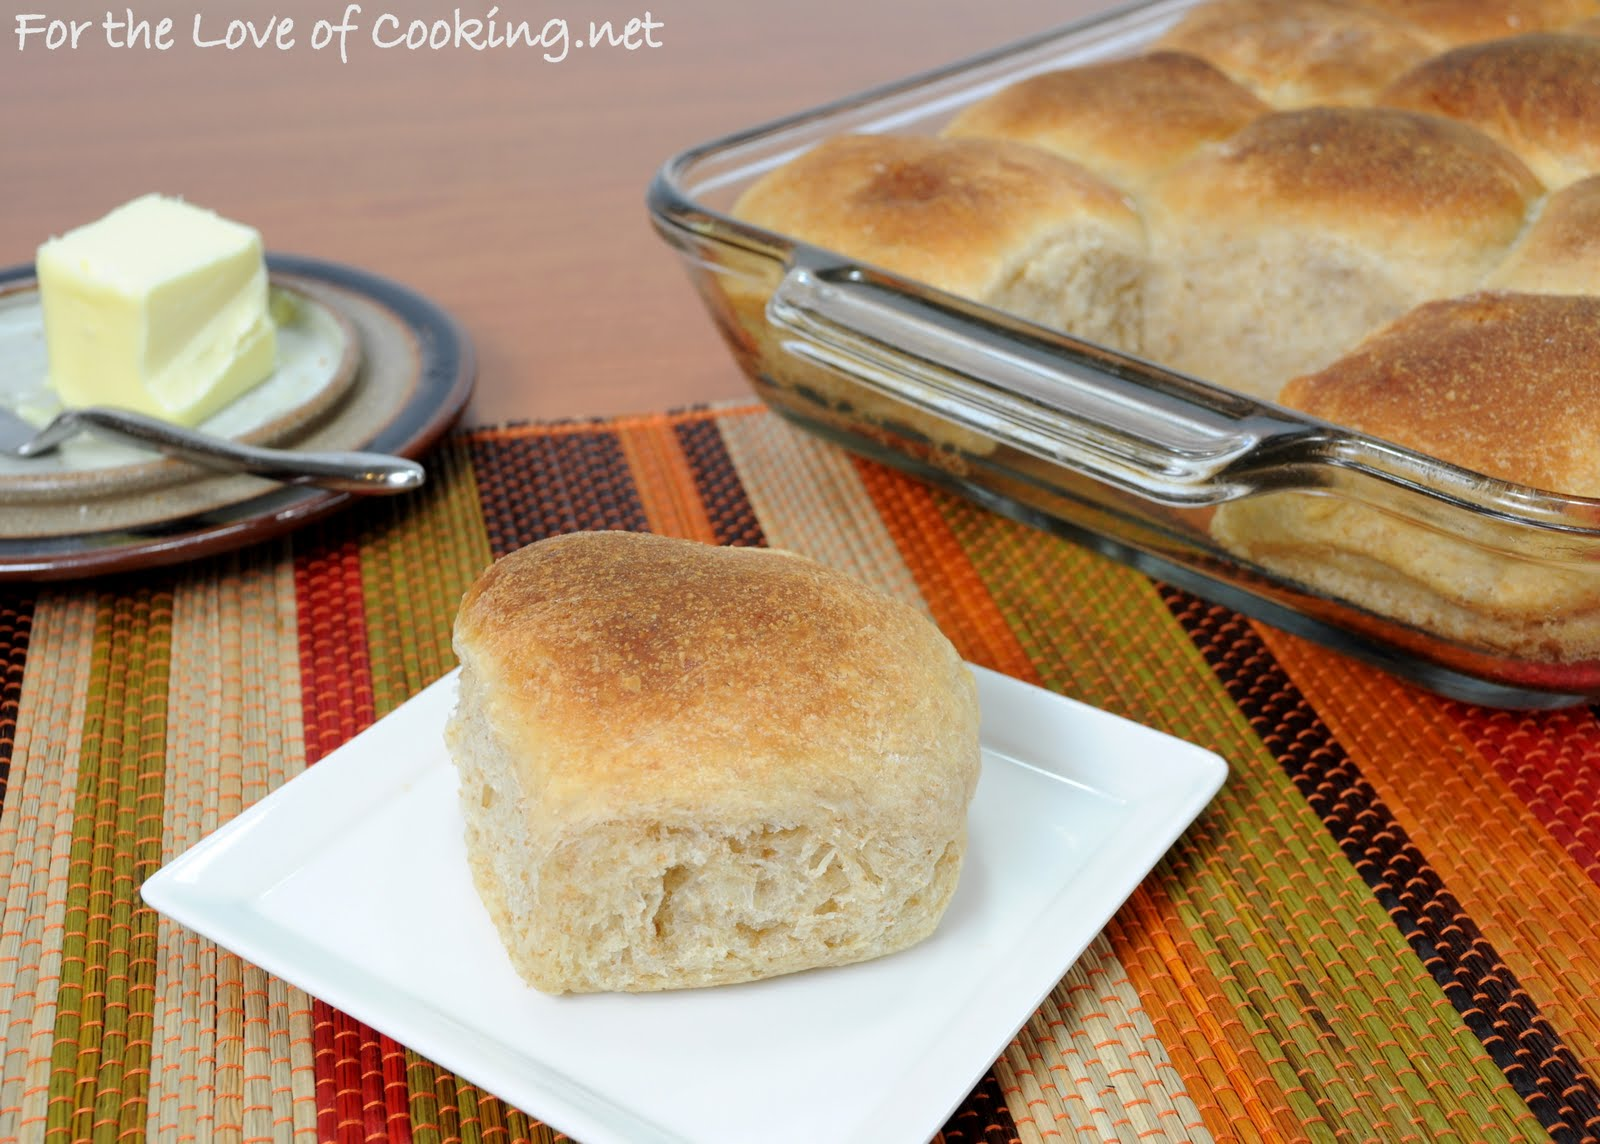 ... , cooking, cleaning tips: Roasted Garlic Whole Wheat Dinner Rolls